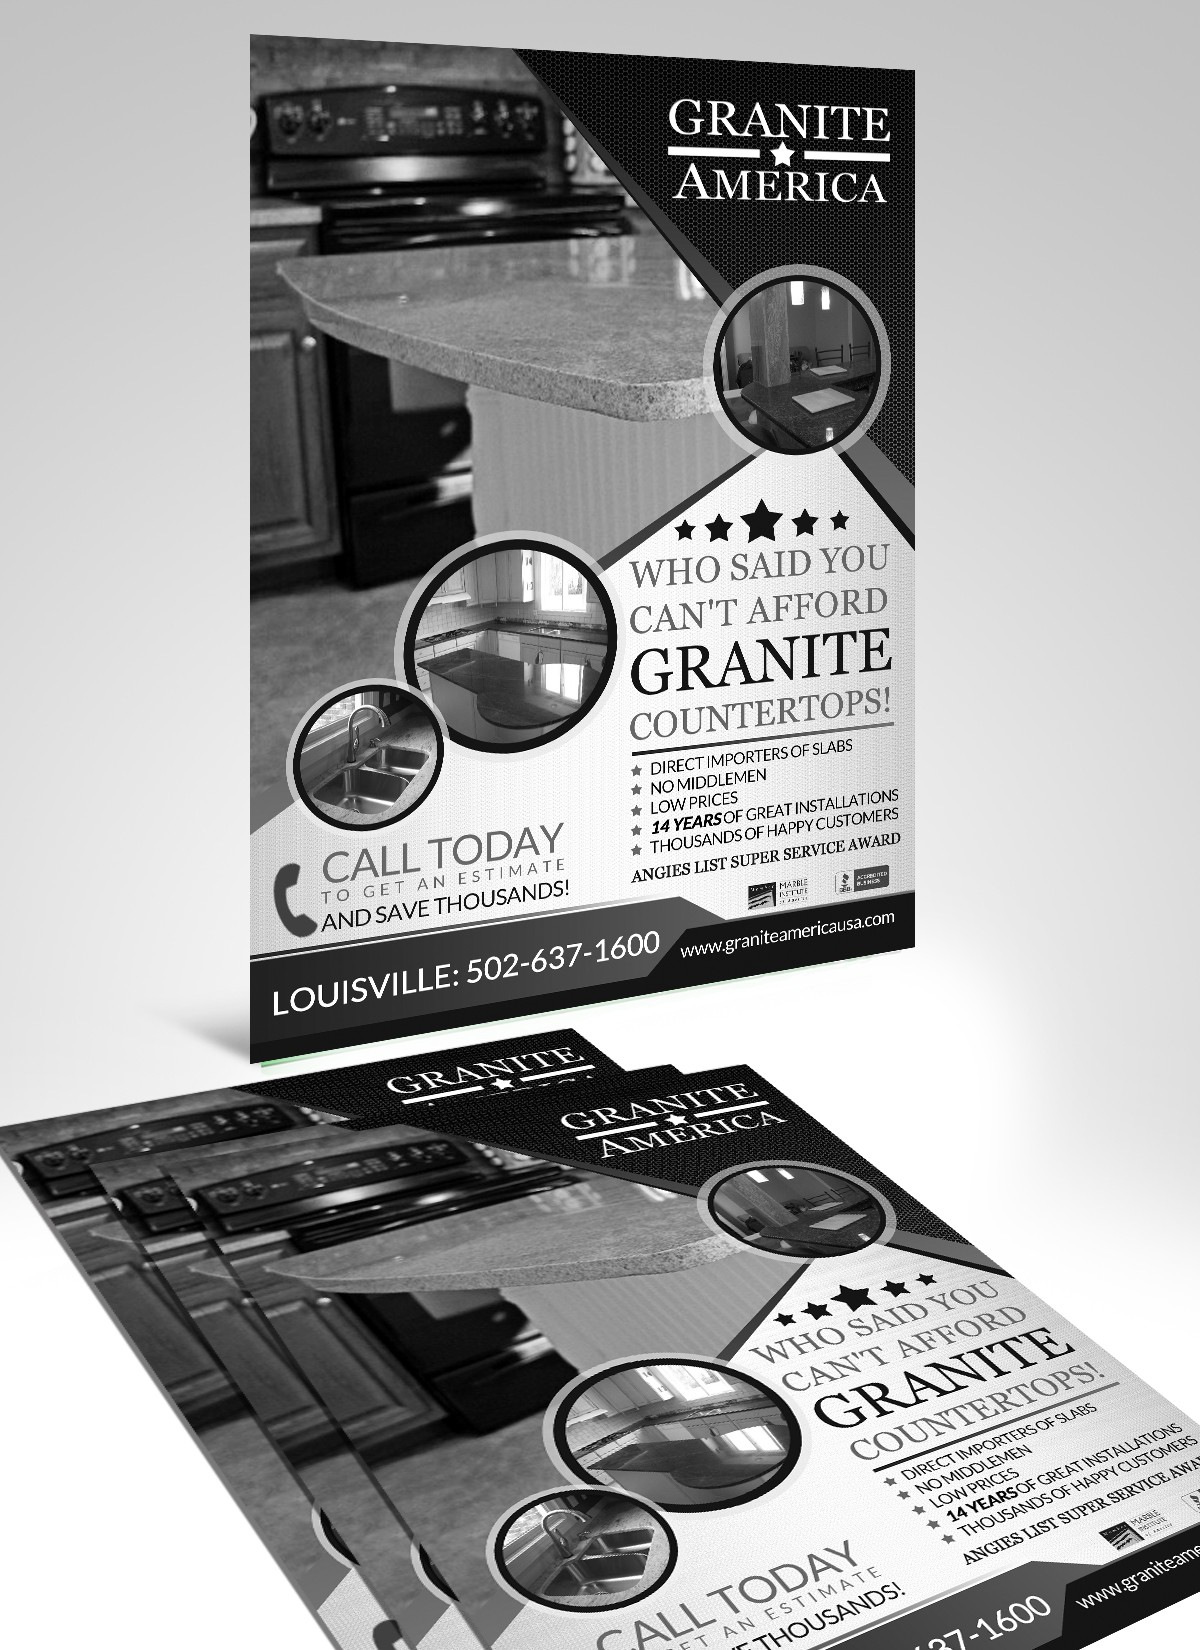 Create the next postcard or flyer for Granite America